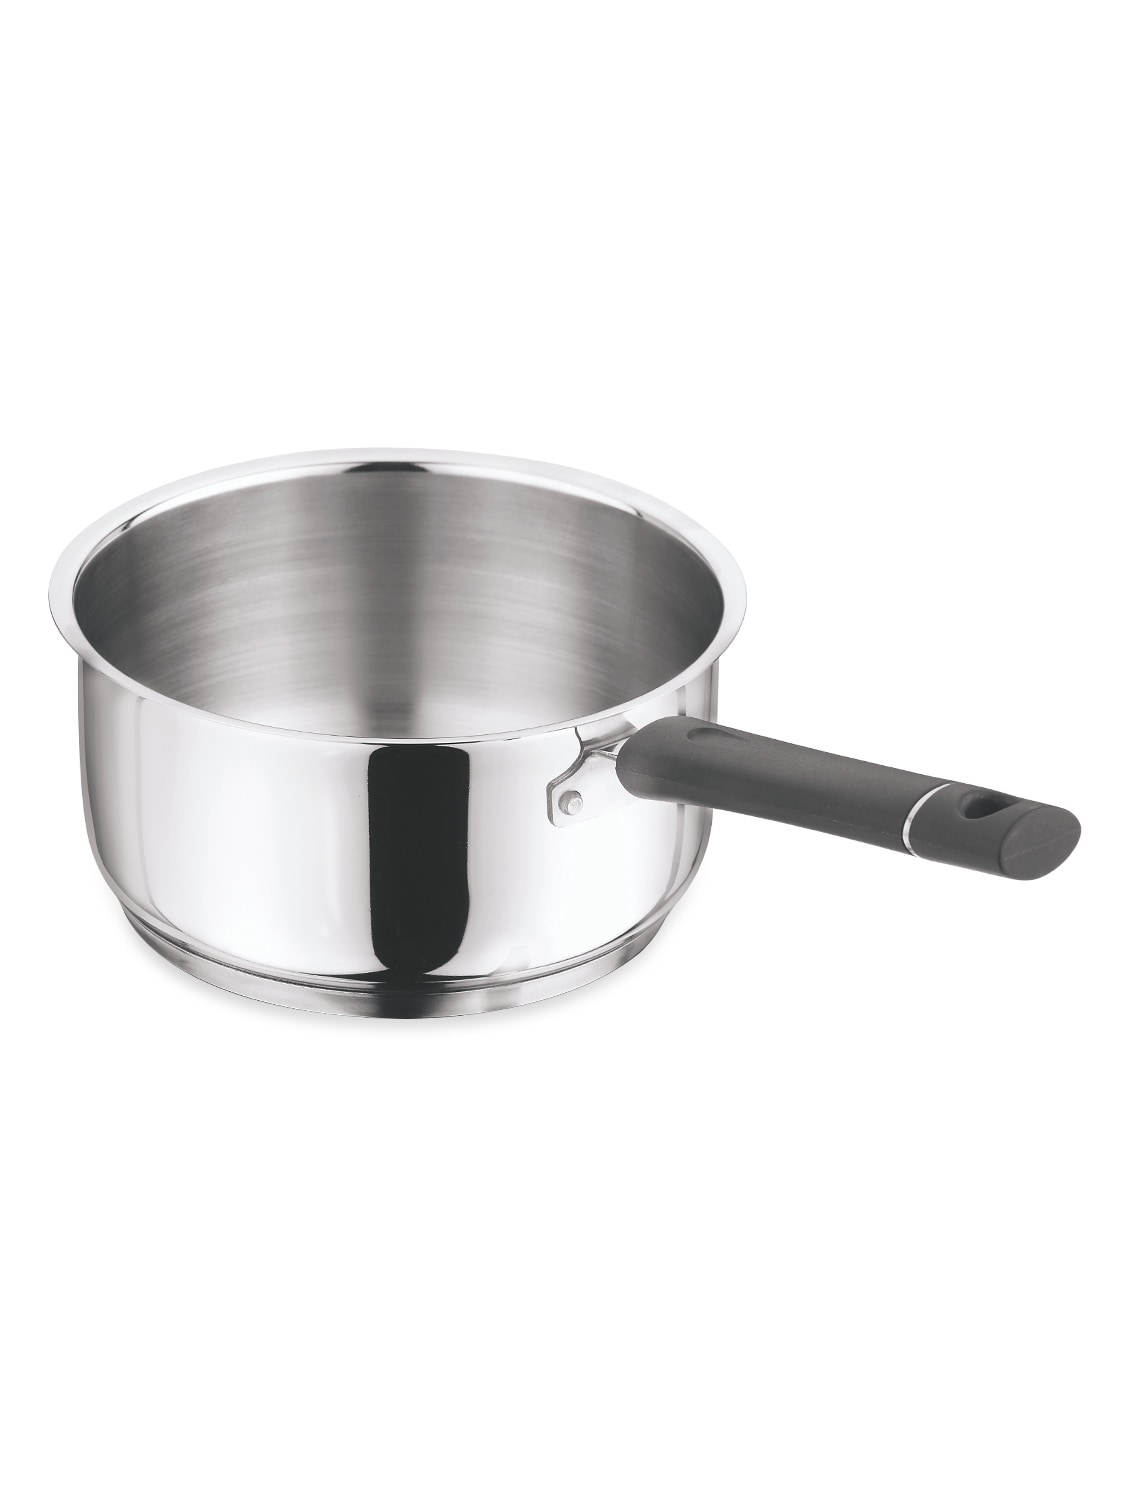 Stainless steel Saucepan without lid